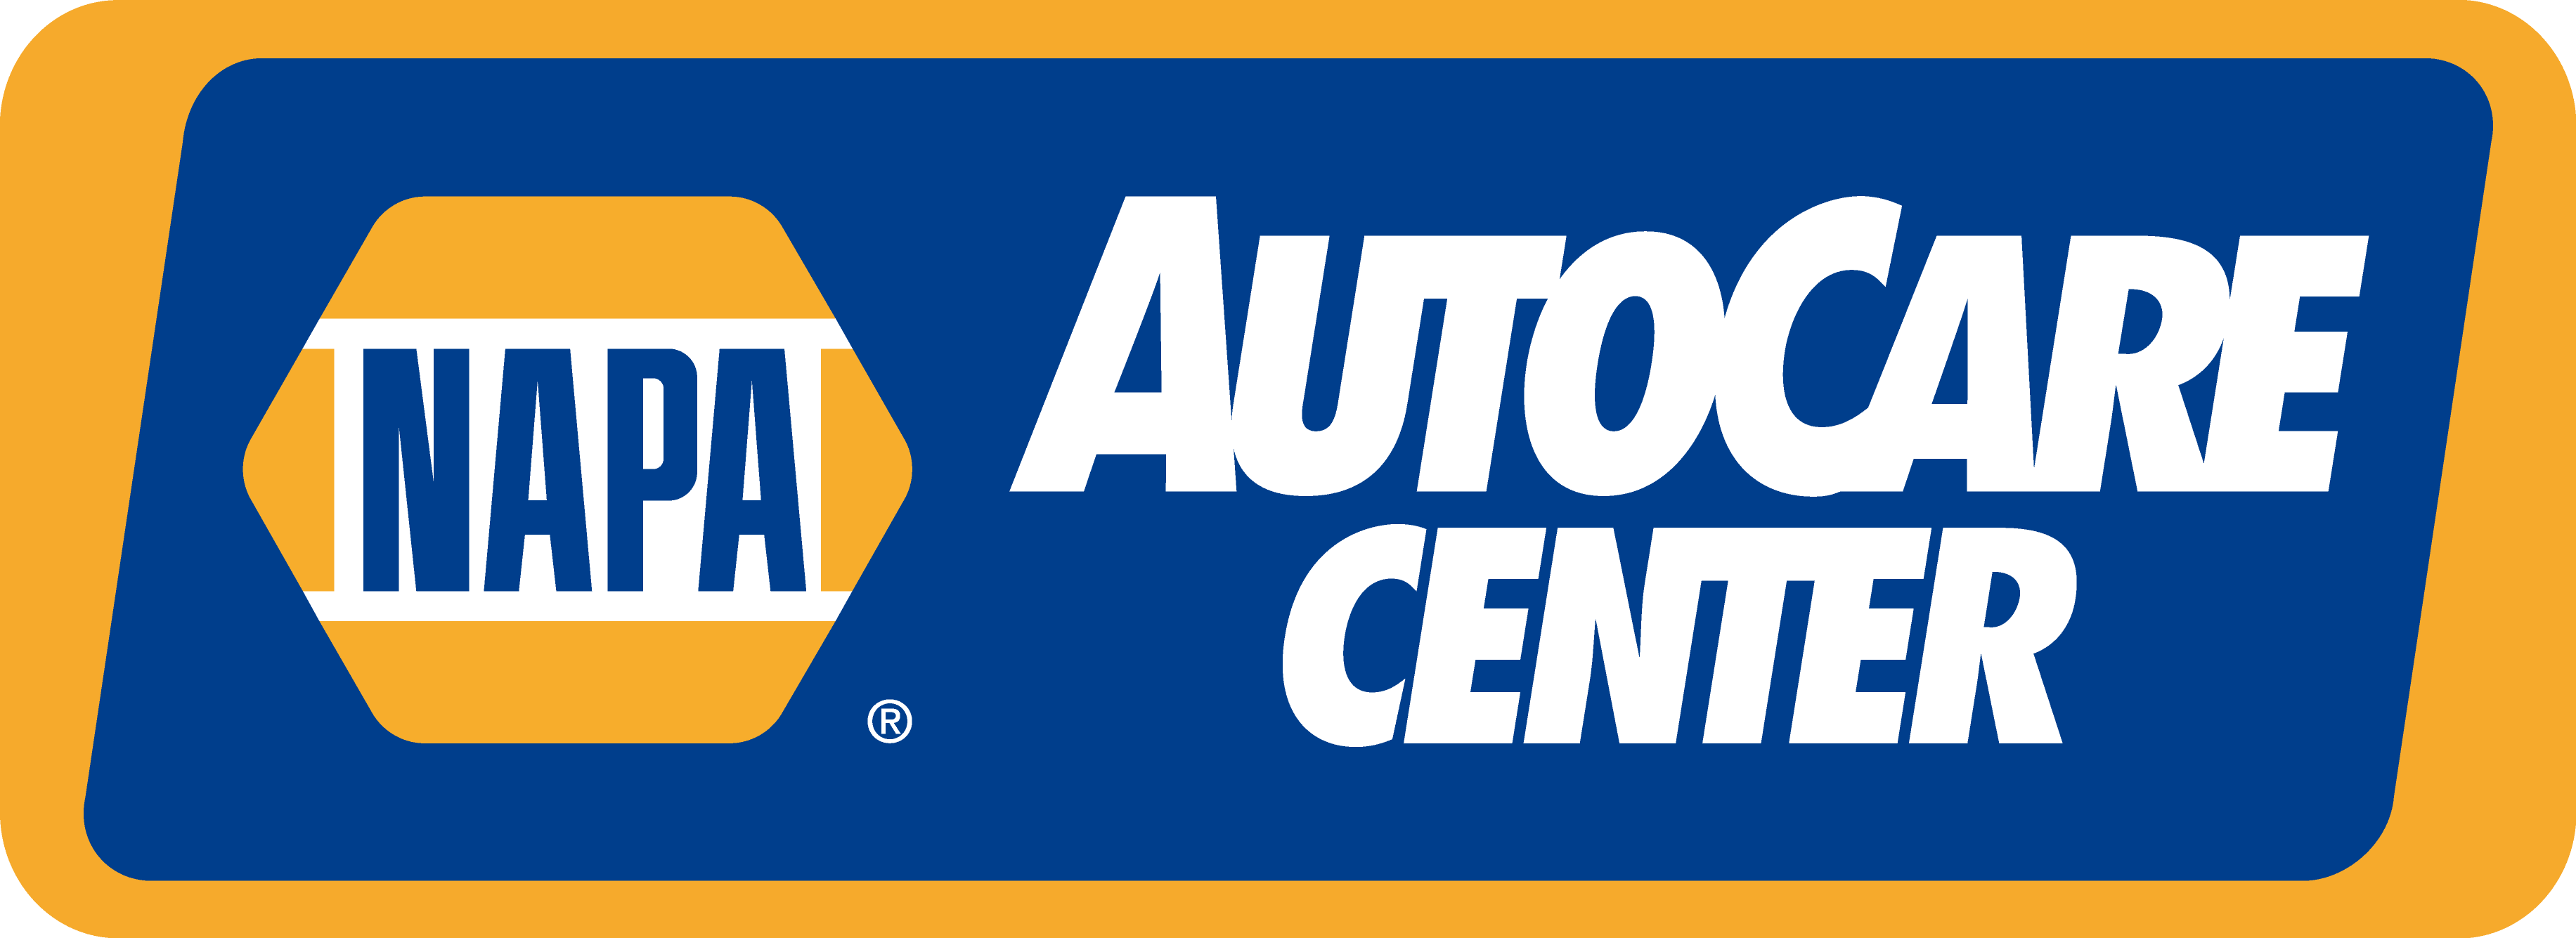 NAPA Auto Care Center, L & S Automotive Inc, Newark, NJ, 07104